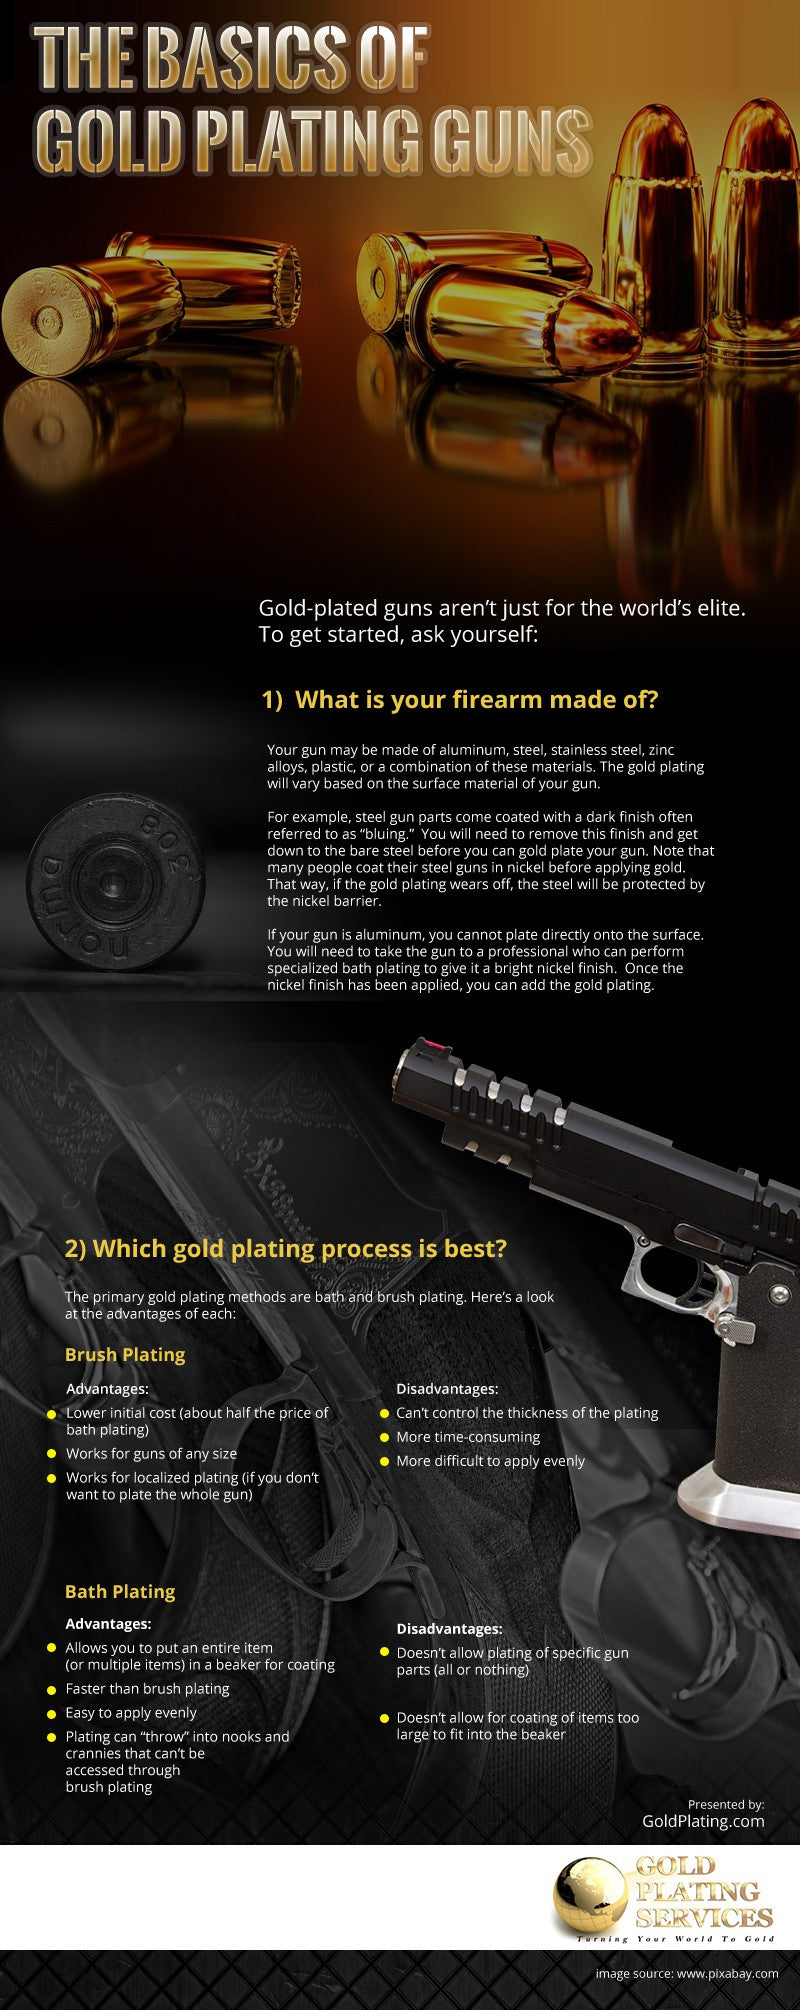 The Basics of Gold Plating Guns [infographic]